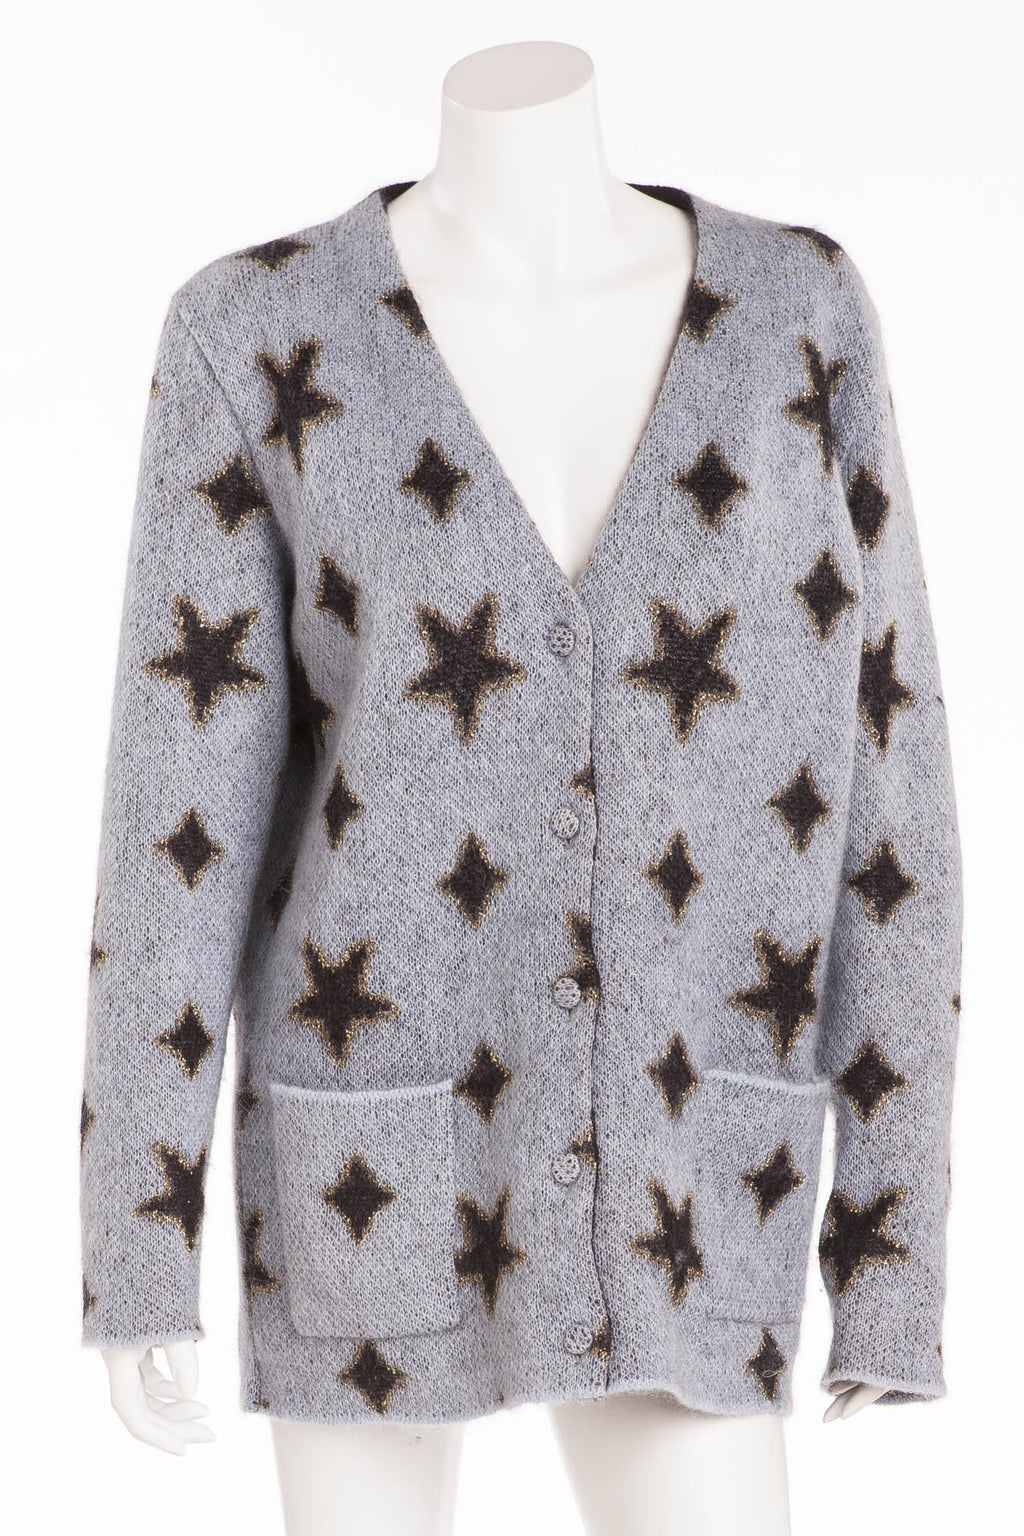 Saint Laurent - Long Sleeve Light Blue Cardigan with Black Stars - M